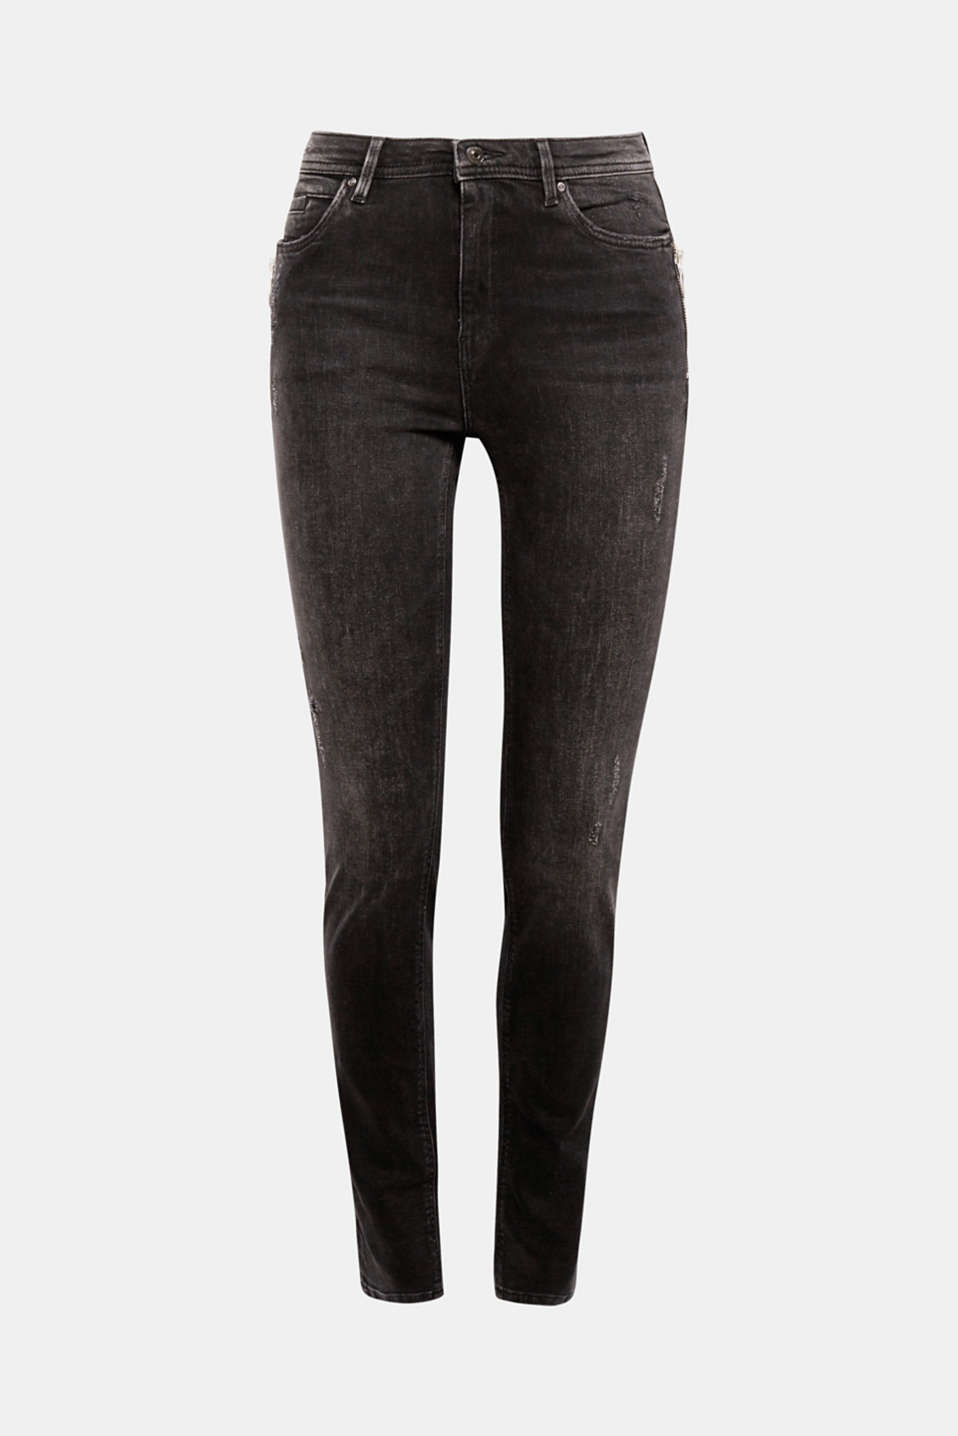 Decorative zip with ring pendants on the pockets and cool vintage effects give these skinny stretch jeans with a high rise waist their trendy look!